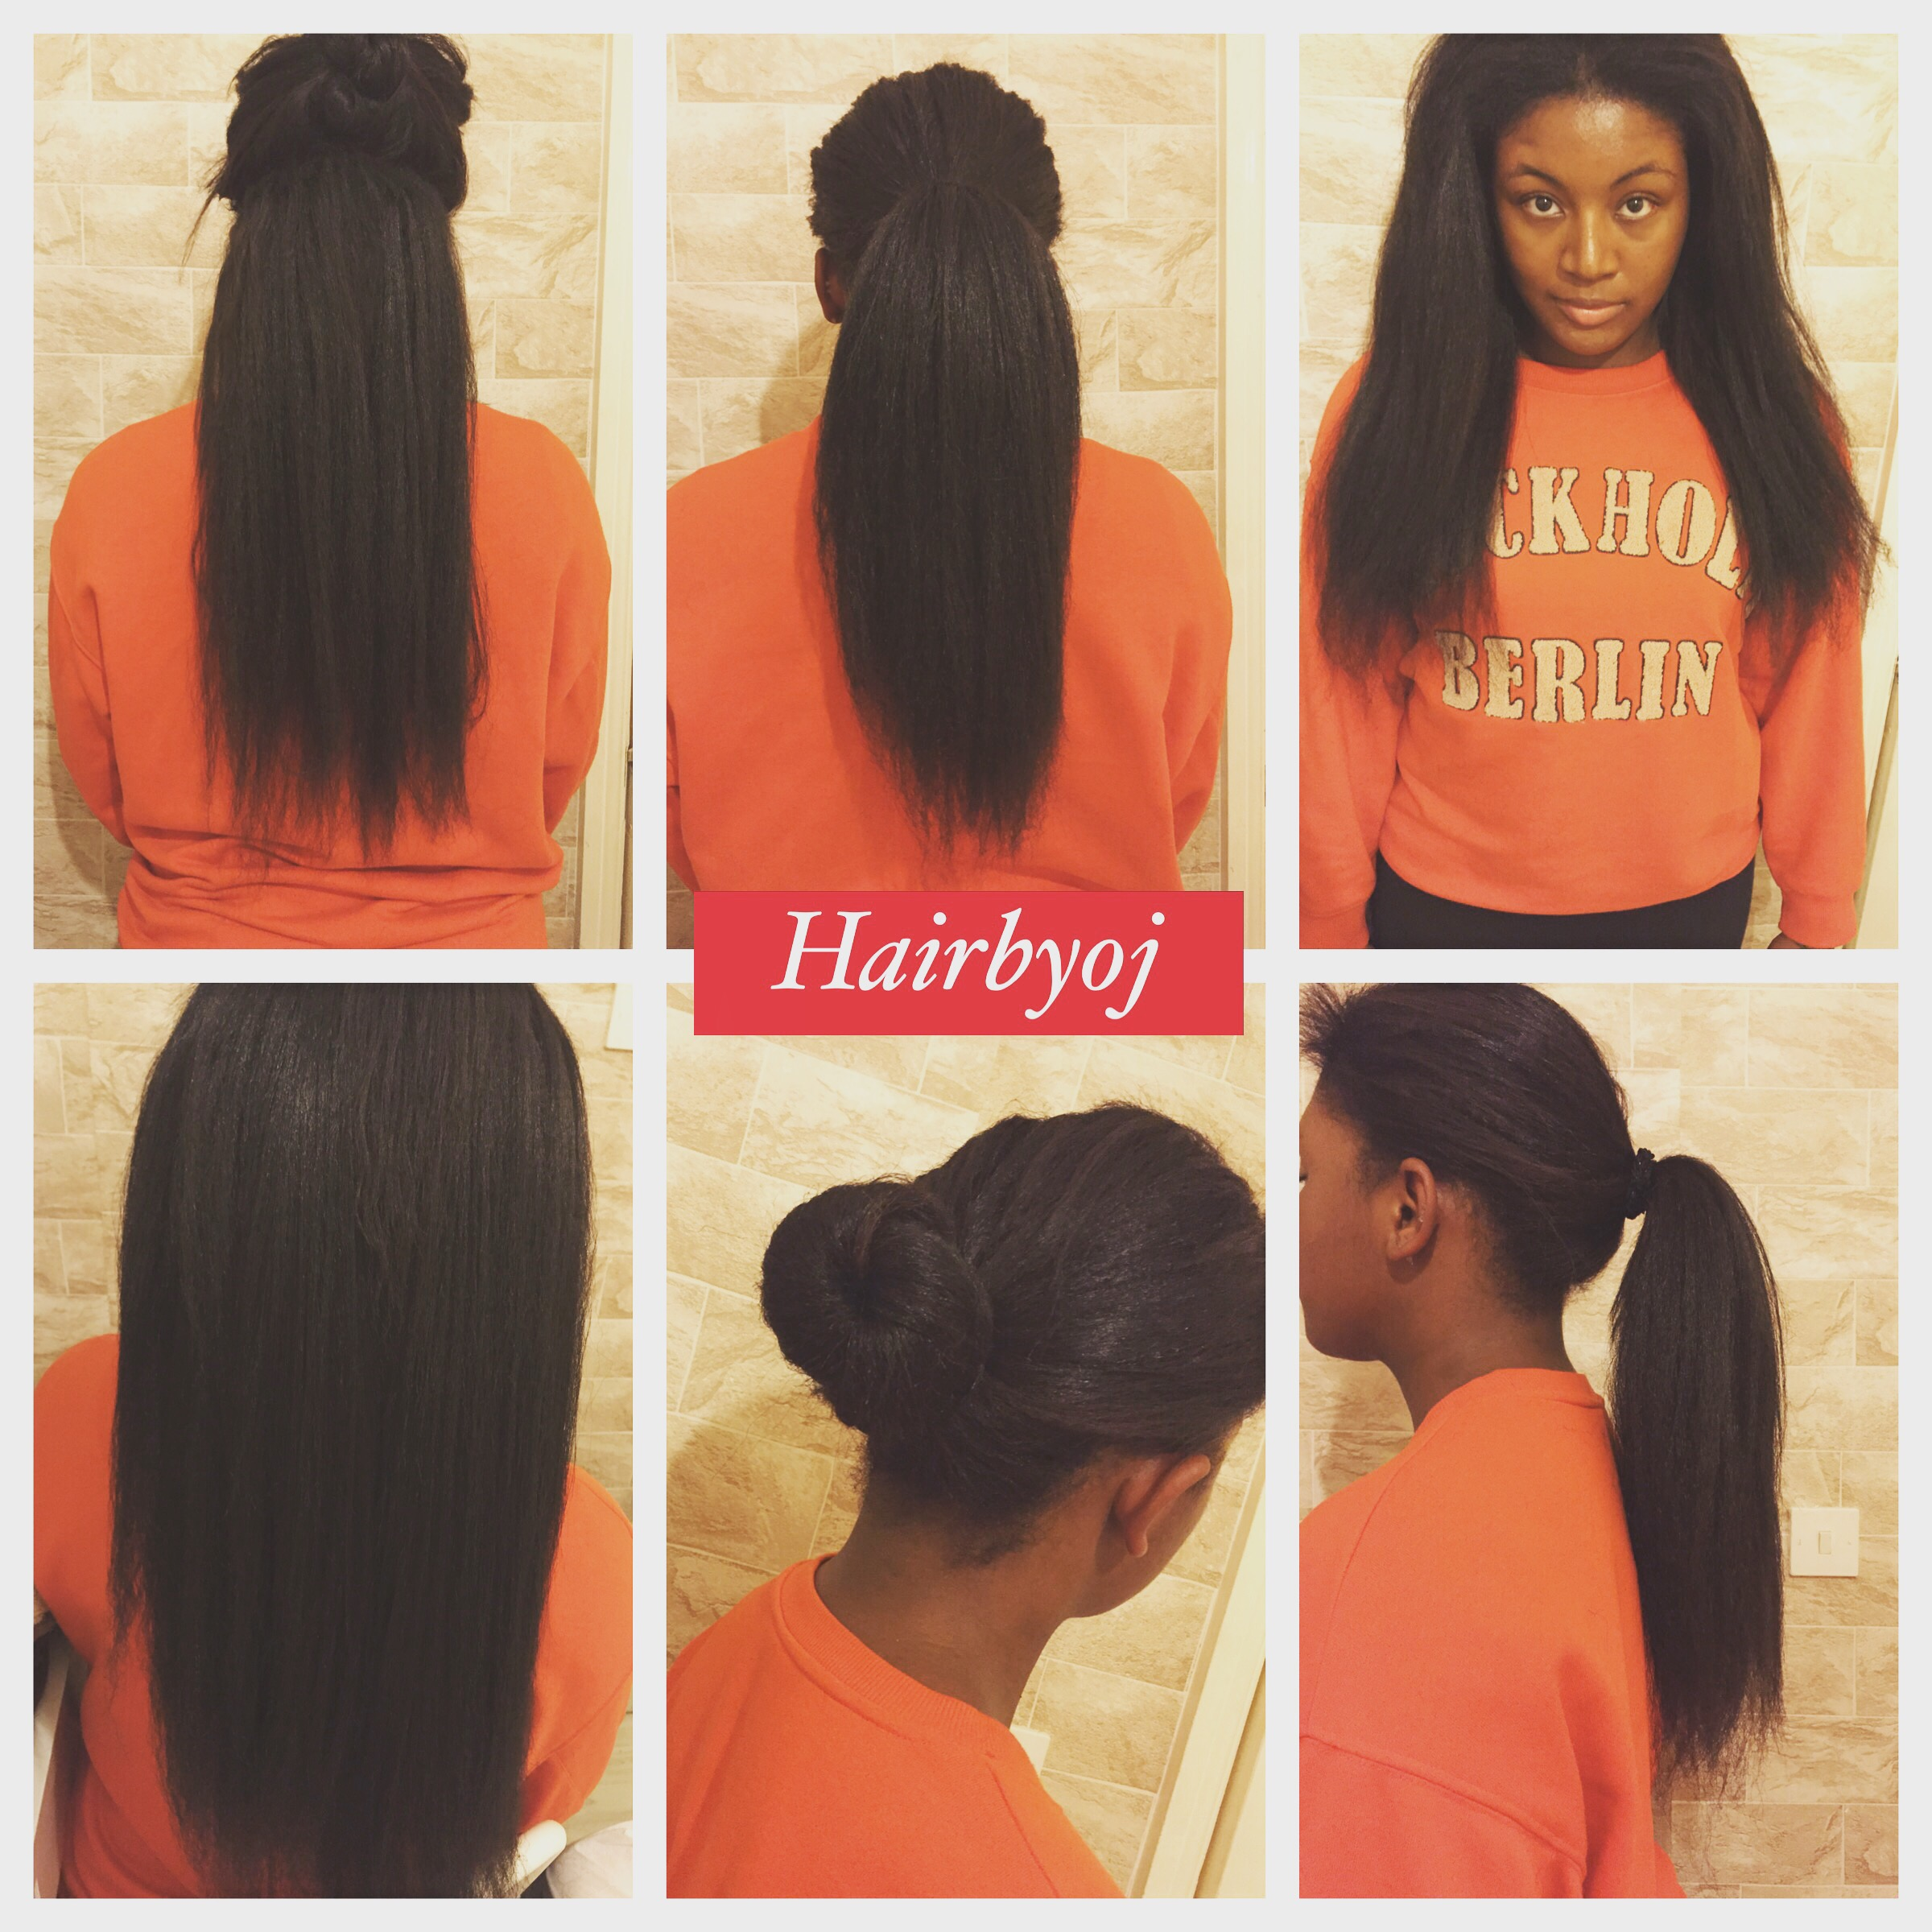 Crochet Marley Hair Vixen : ... length 4 way part vixen crochet braids with blowdried Marley hair